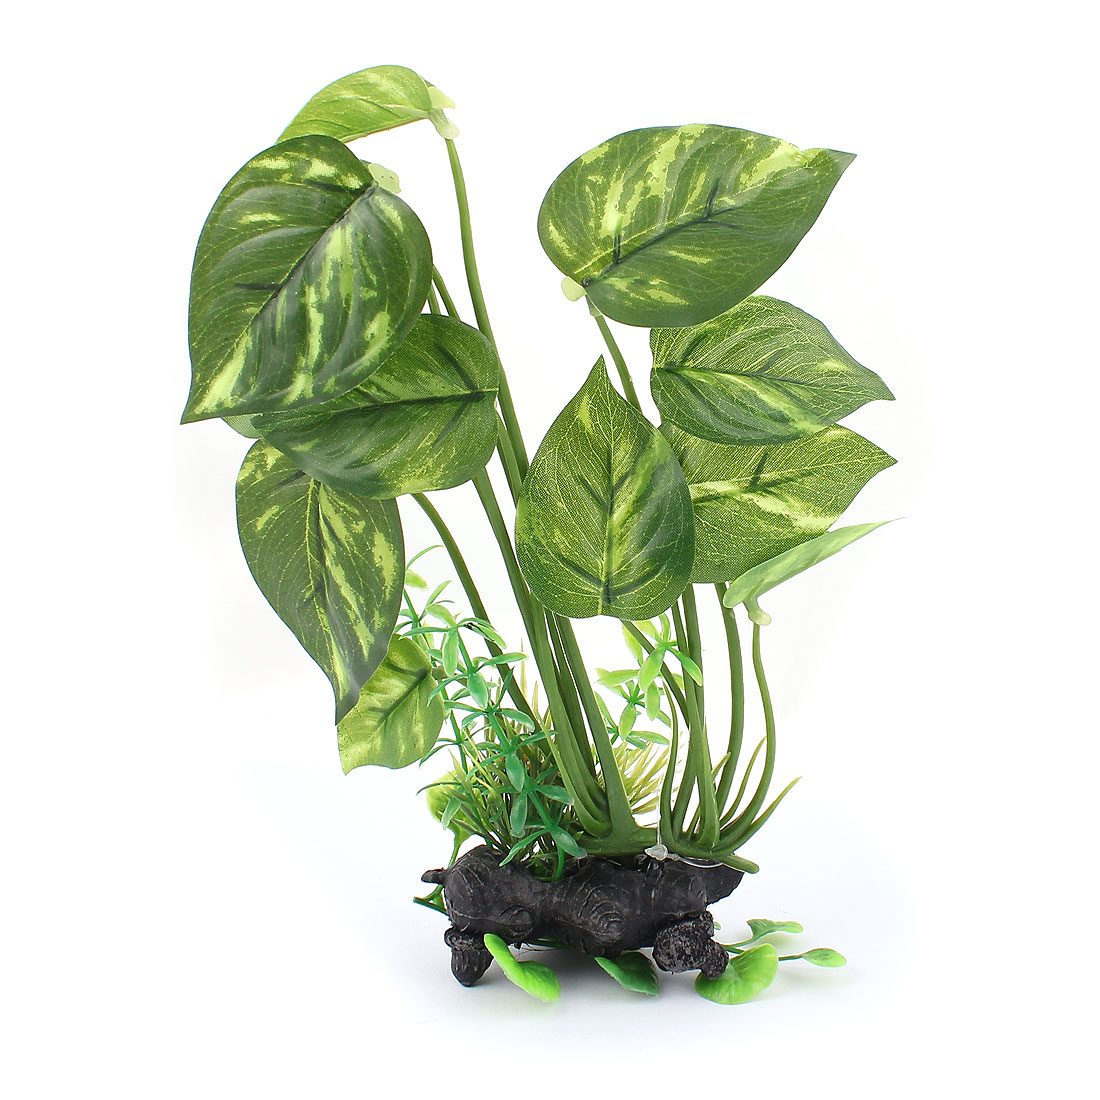 "8.9"" Height Green Plastic Artificial Emulational Decor Aquascaping Ceramic Base Underwater Leaf Grass Plant for Aquarium Fishbowl"